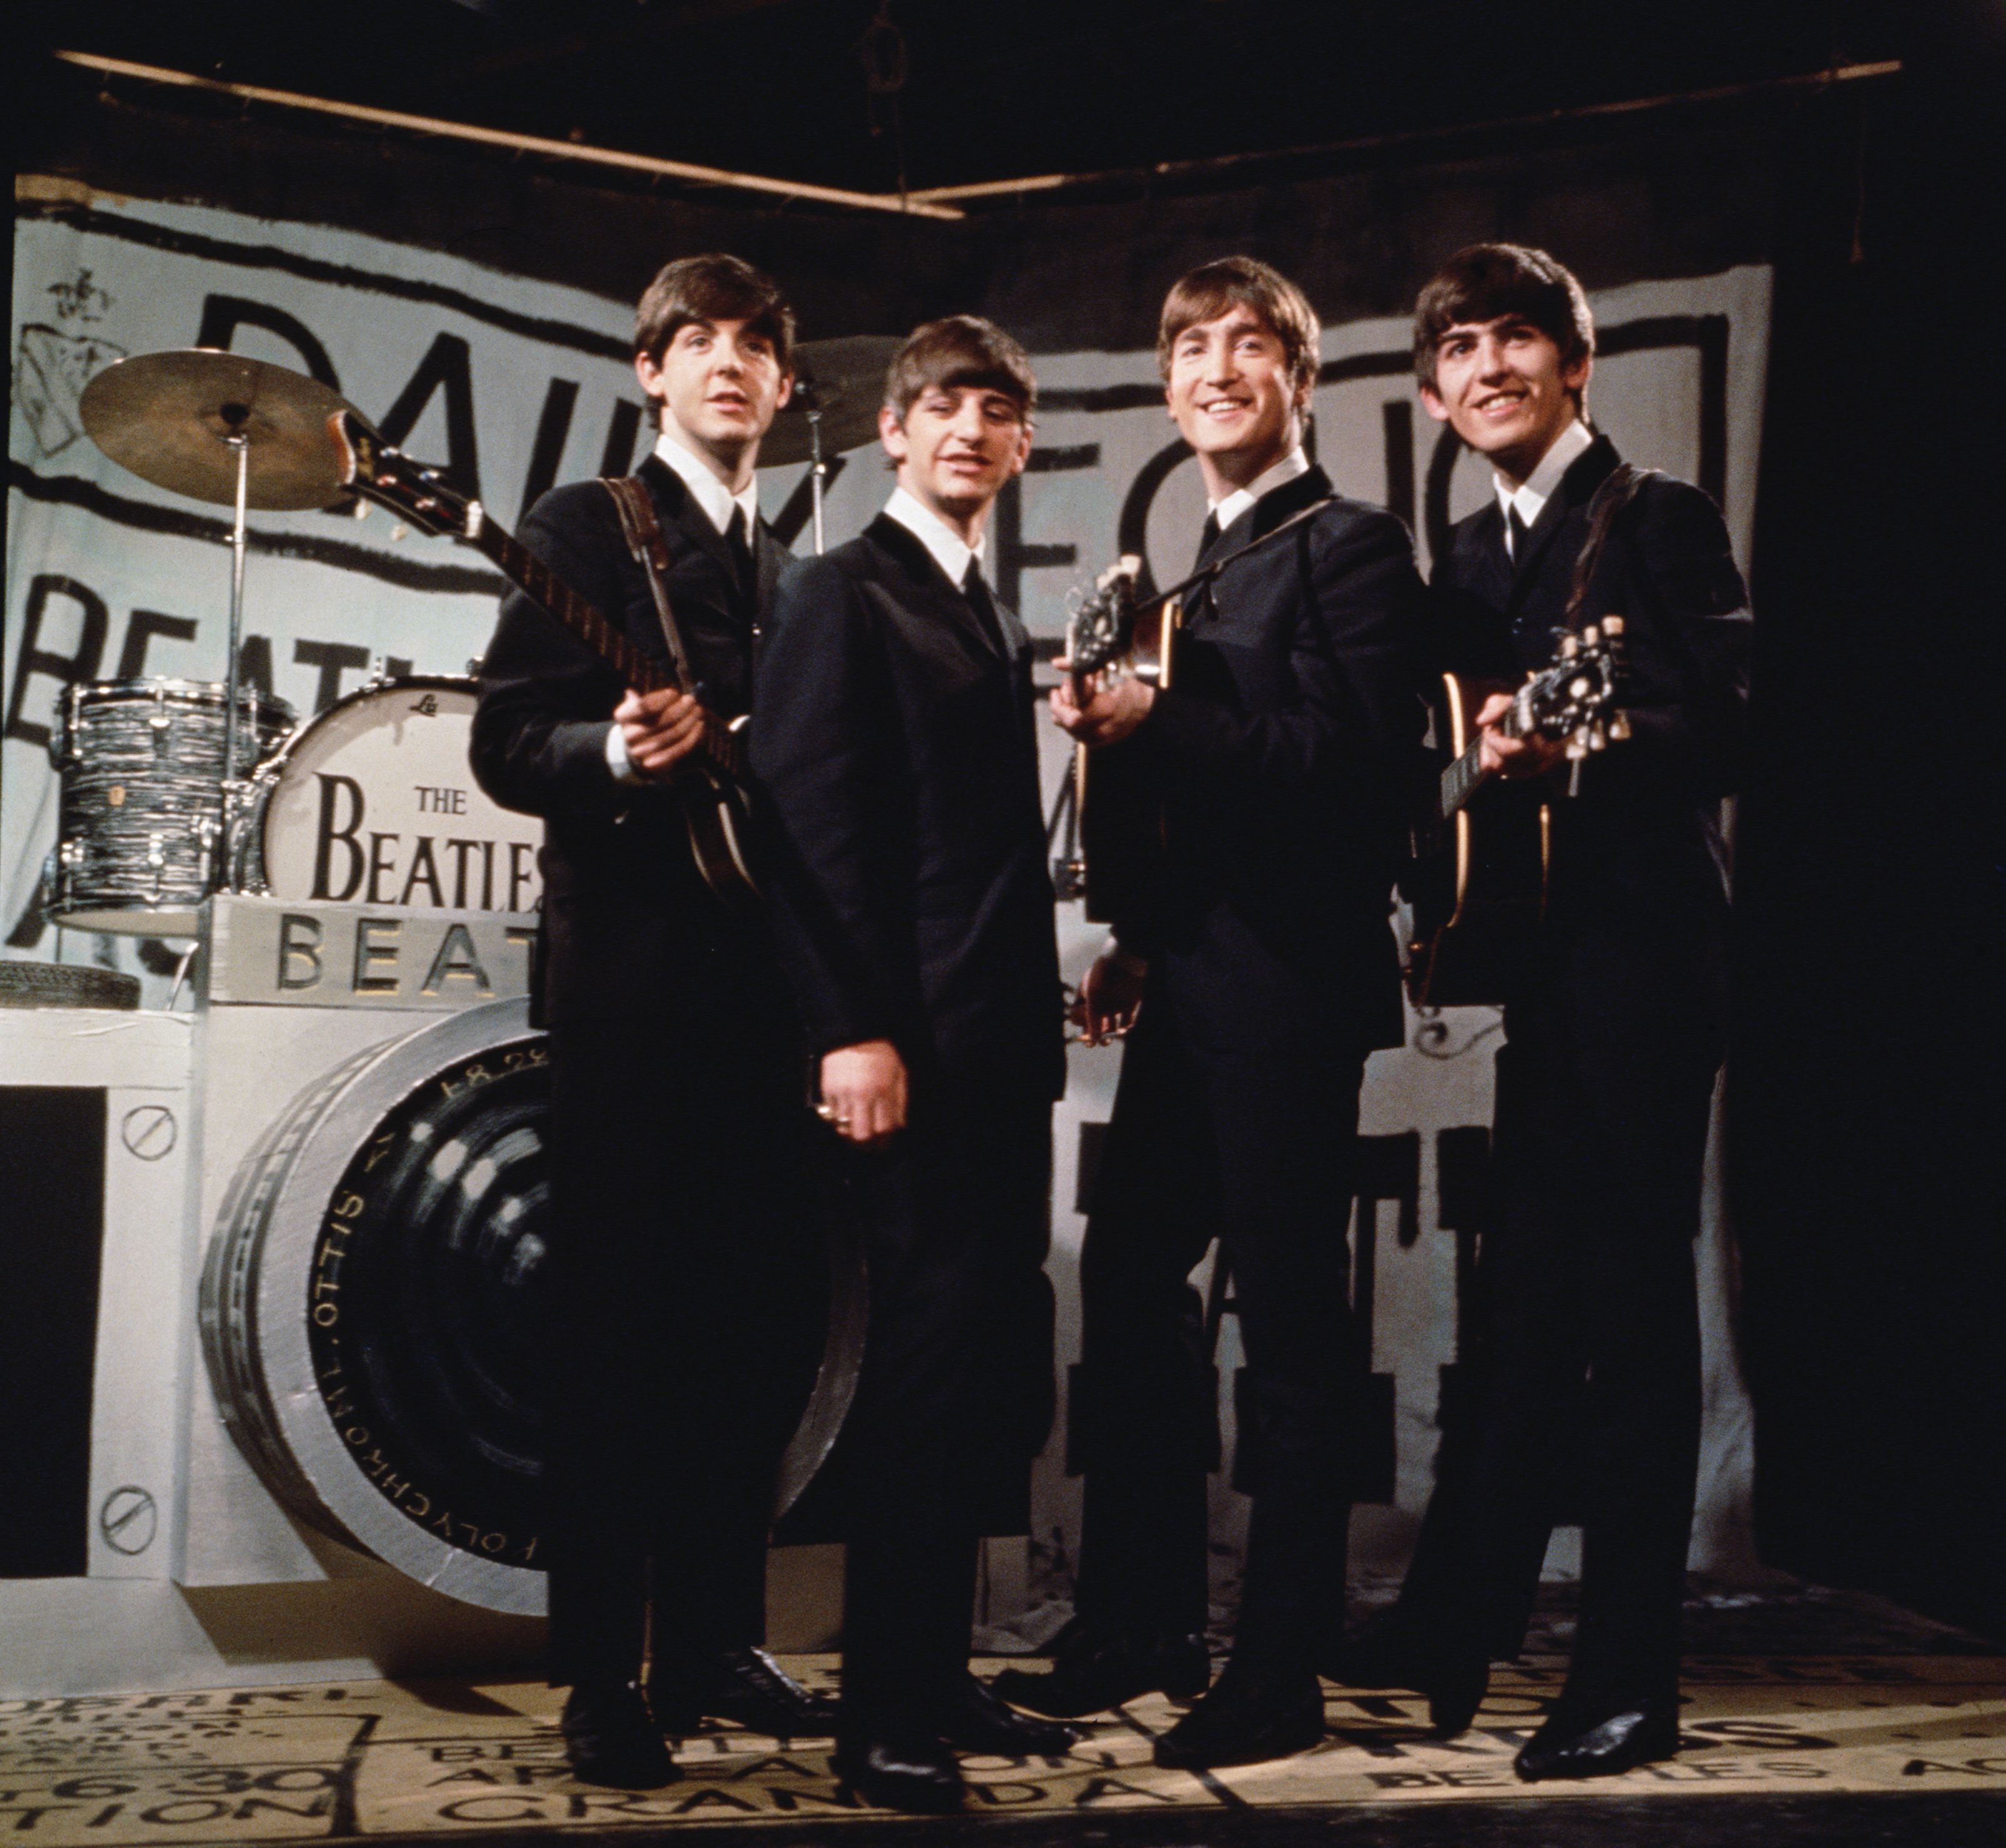 Here are the 10 most popular Beatles songs streaming on Spotify